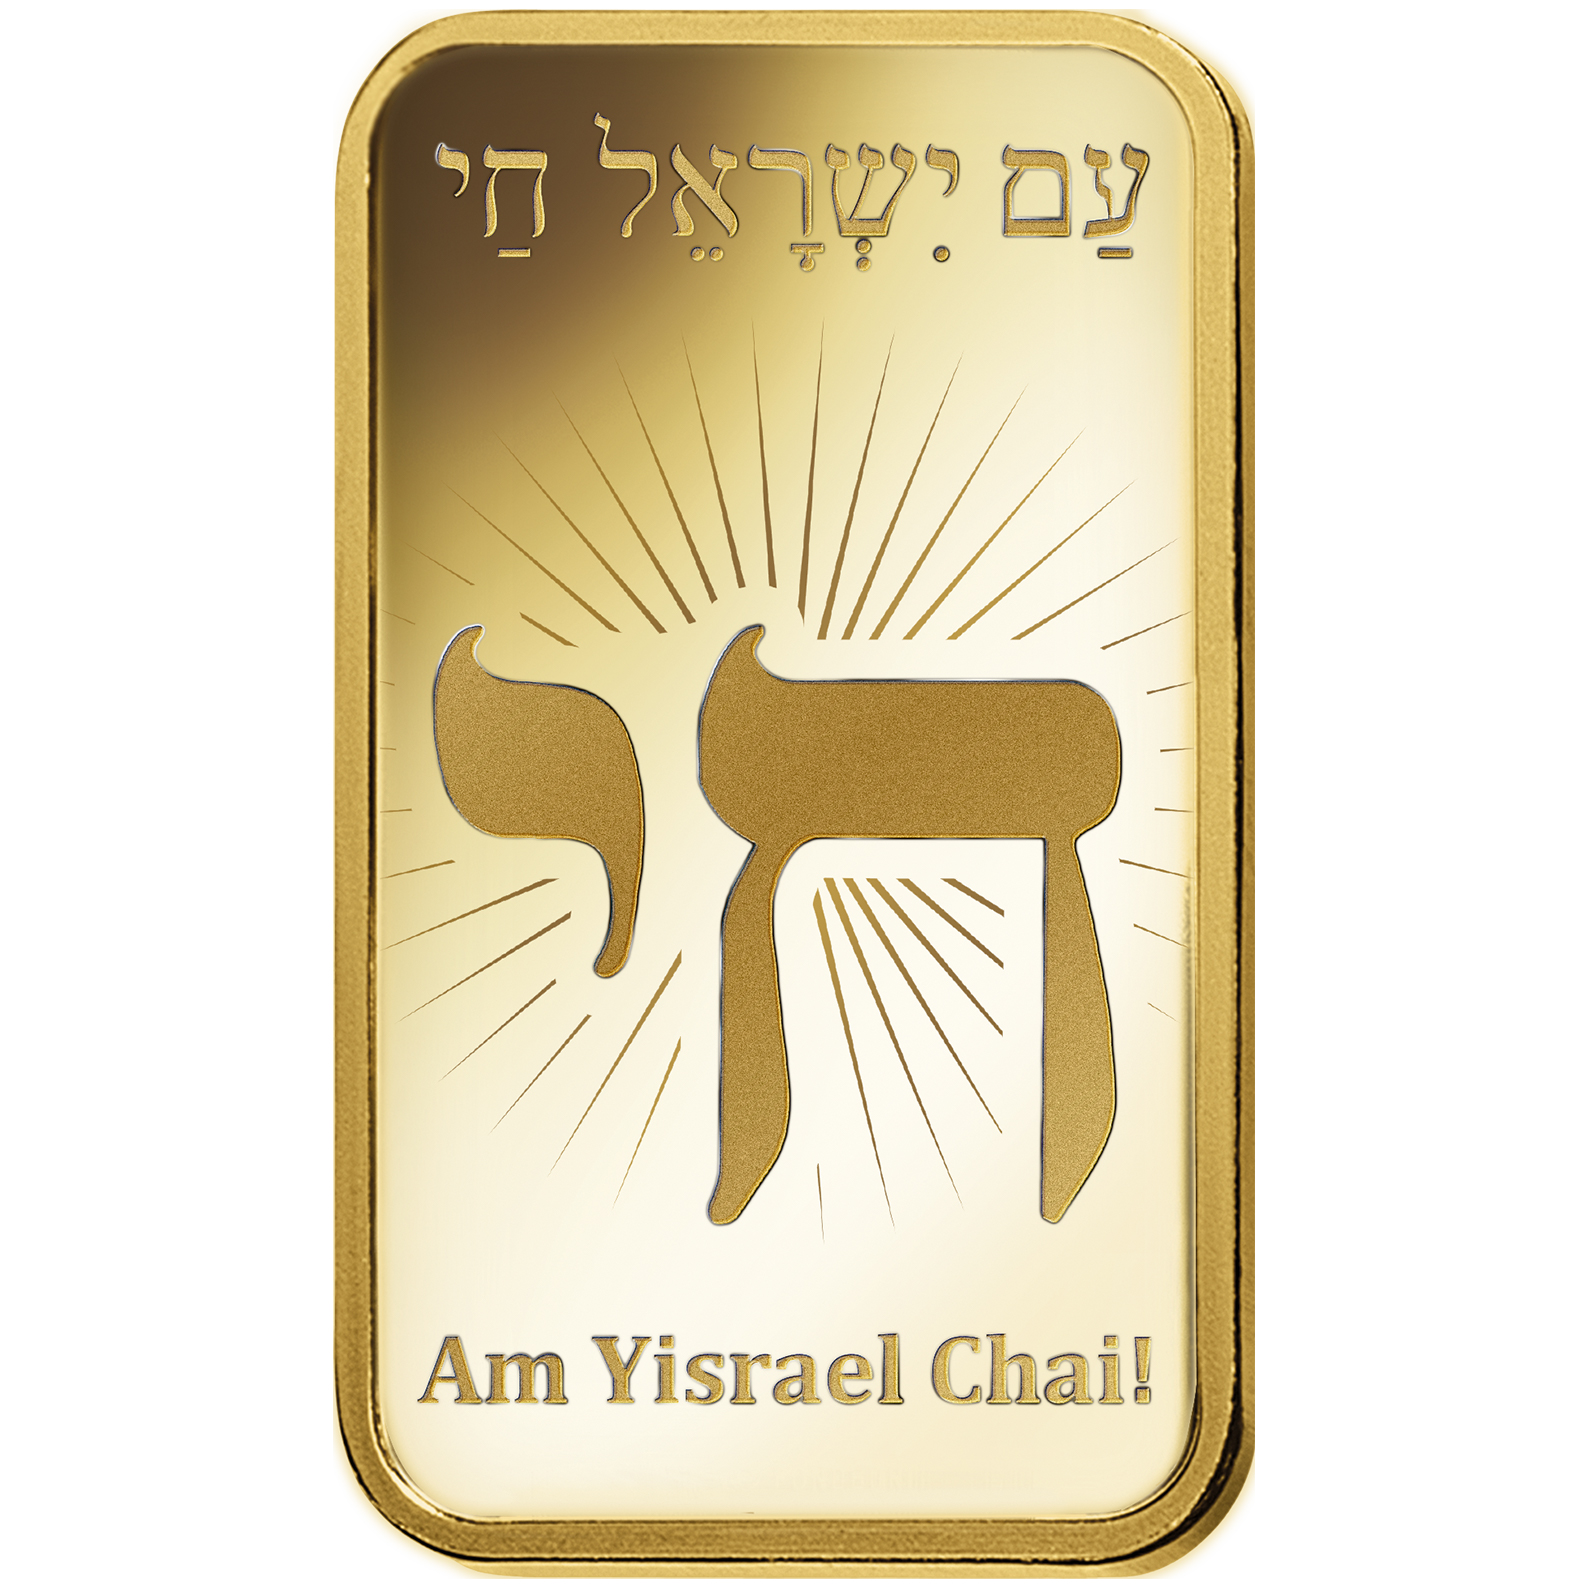 1 once lingotin d'or pur 999.9 - PAMP Suisse Am Yisrael Chai